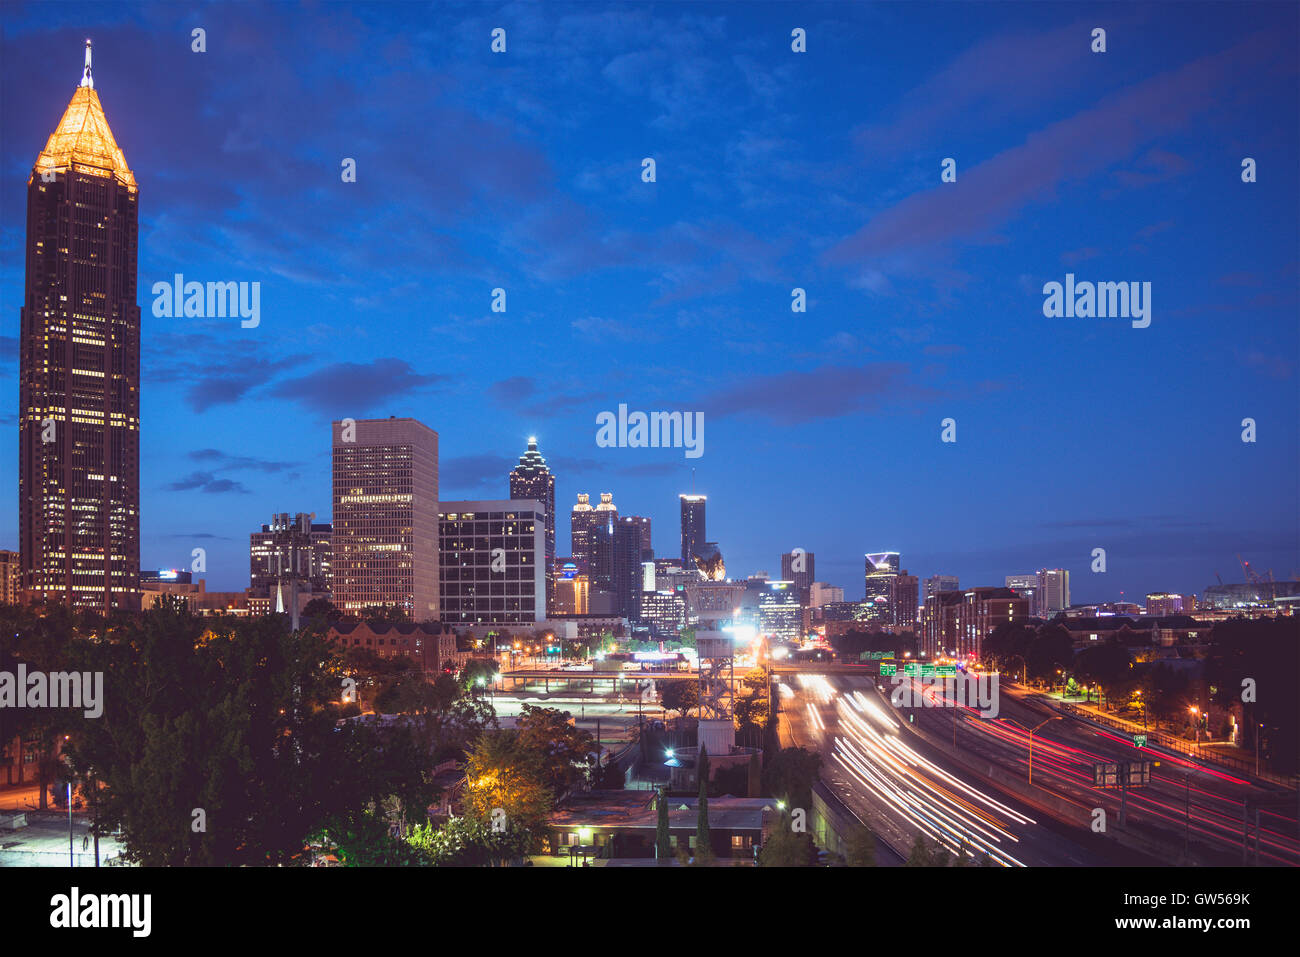 Atlanta skyline at blue hour in the morning. - Stock Image